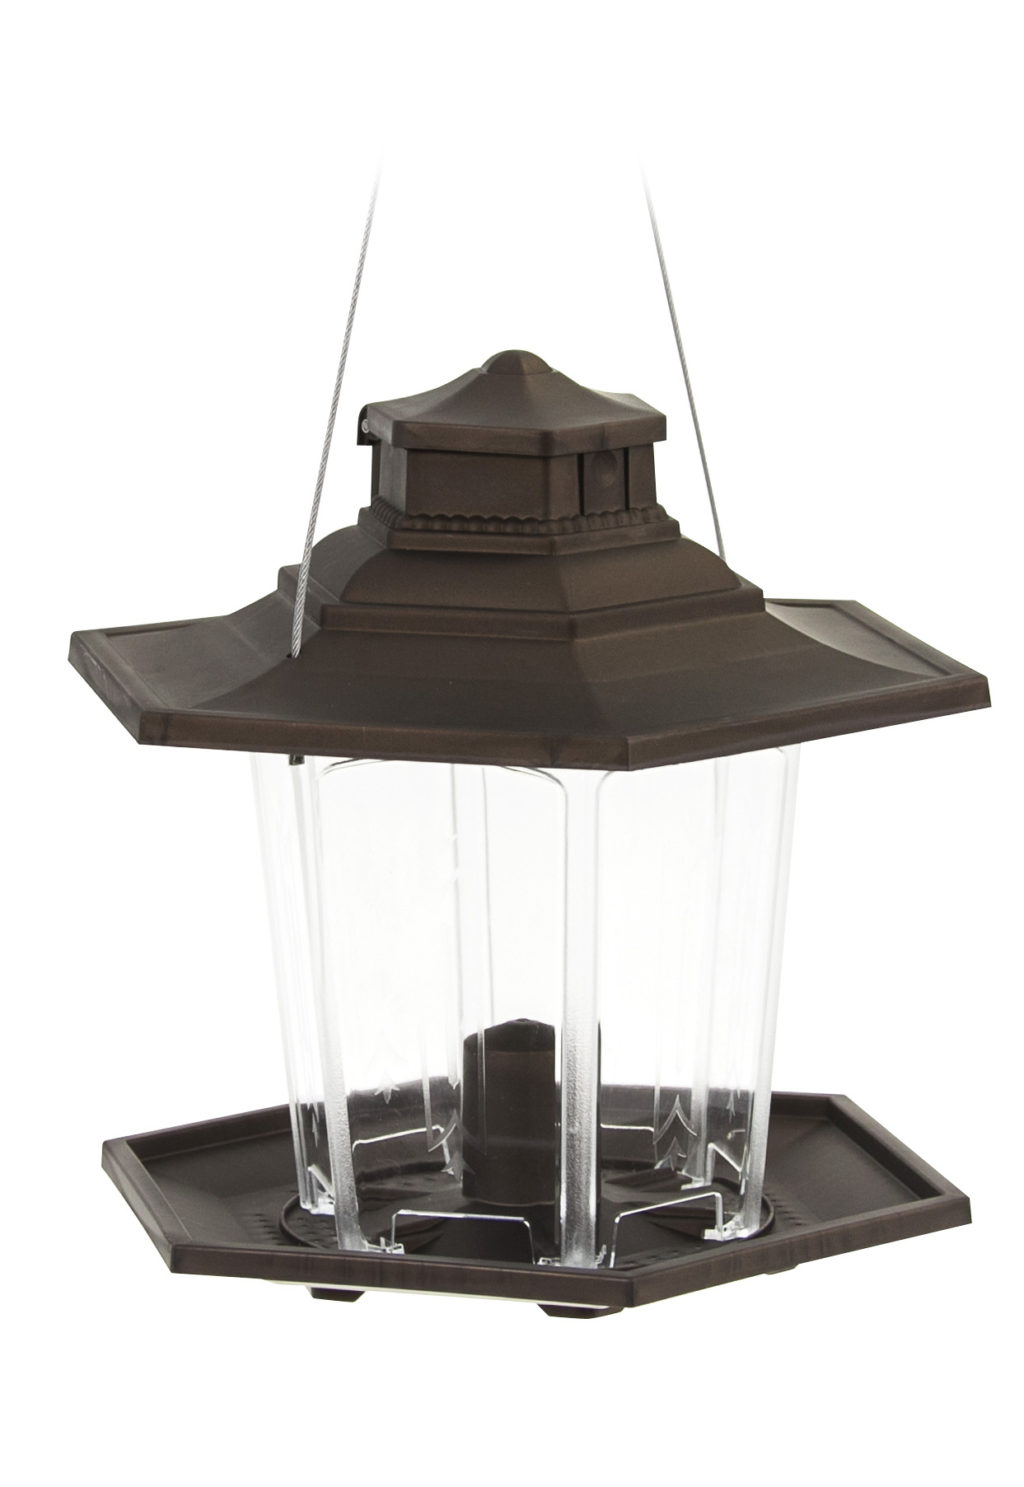 Stokes Select small easy fill plastic lantern